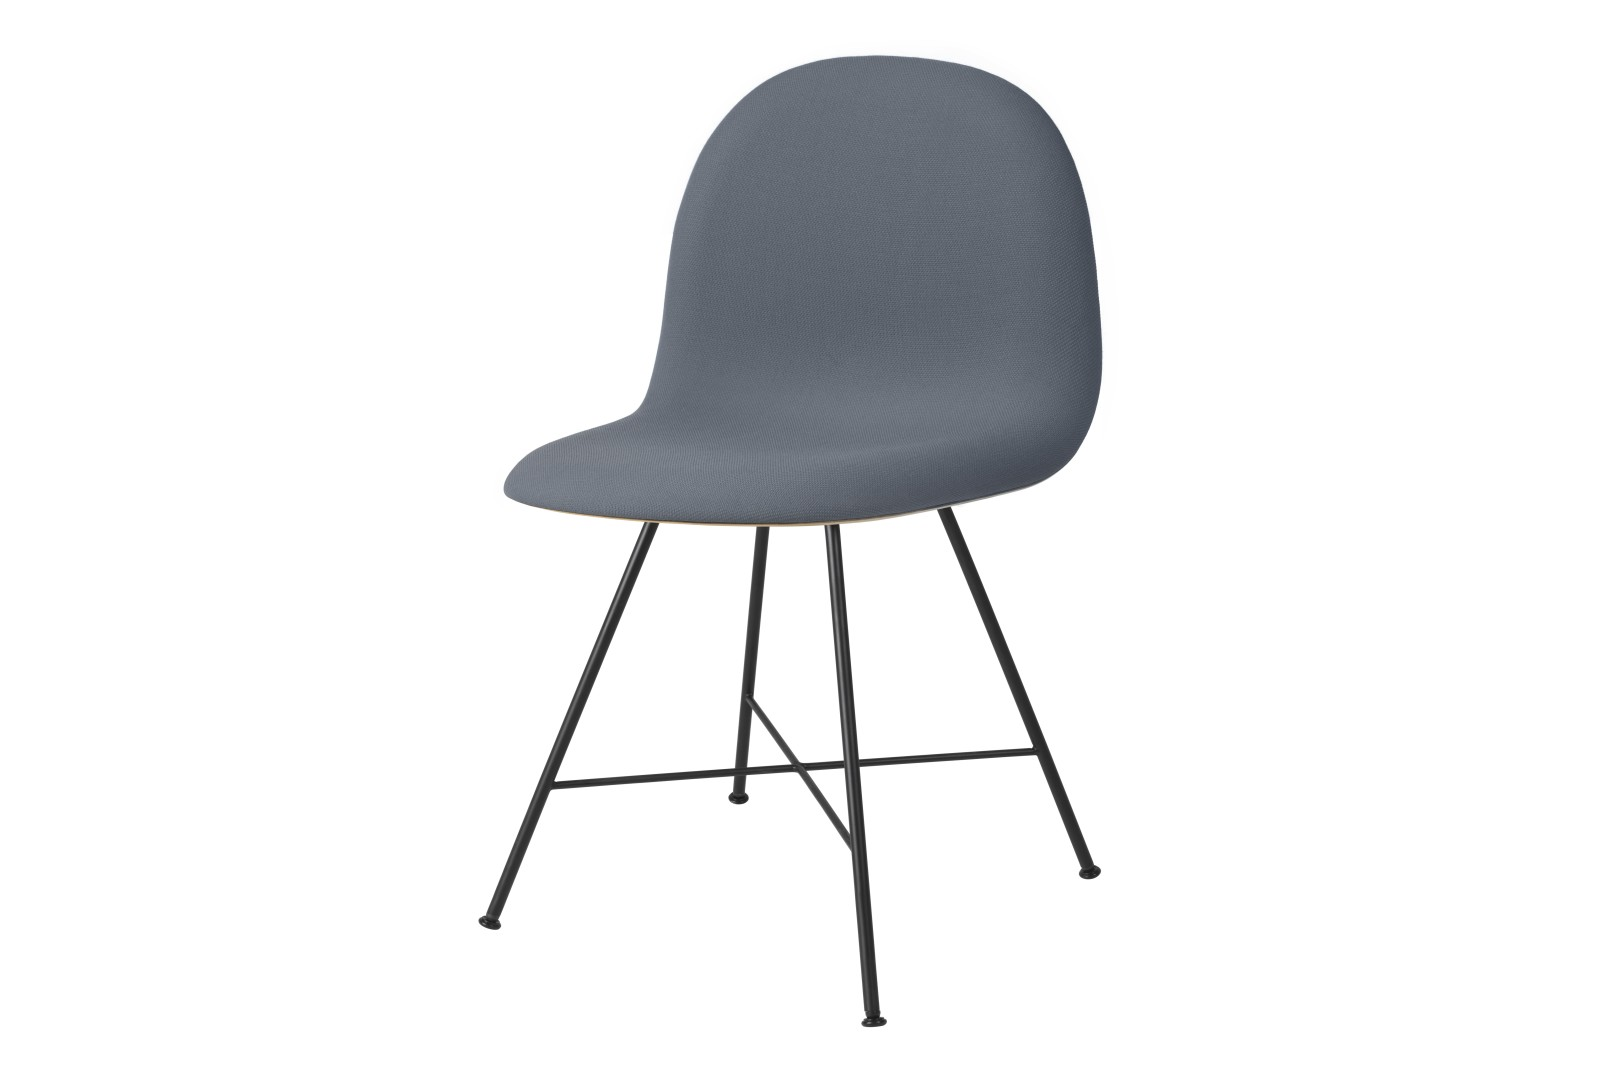 3D Dining Chair - Front Upholstered, Center Base, Wood Shell Price Grp. 01, Gubi Wood American Walnu